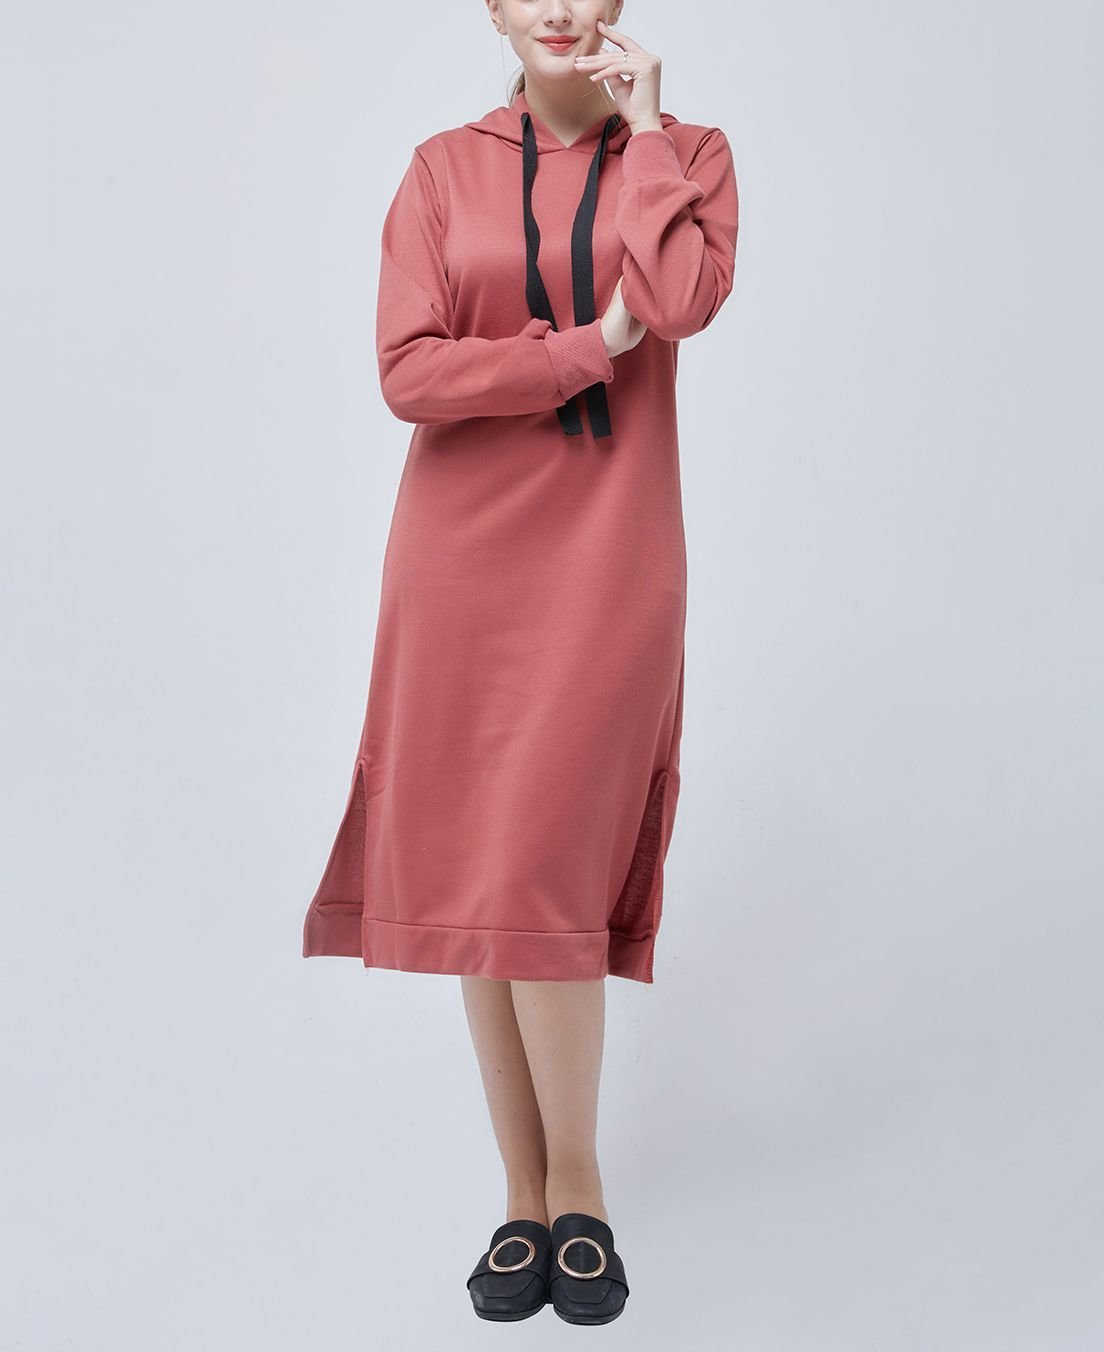 Mid-Calf Hoodie Casual Dress from Wei Clothing